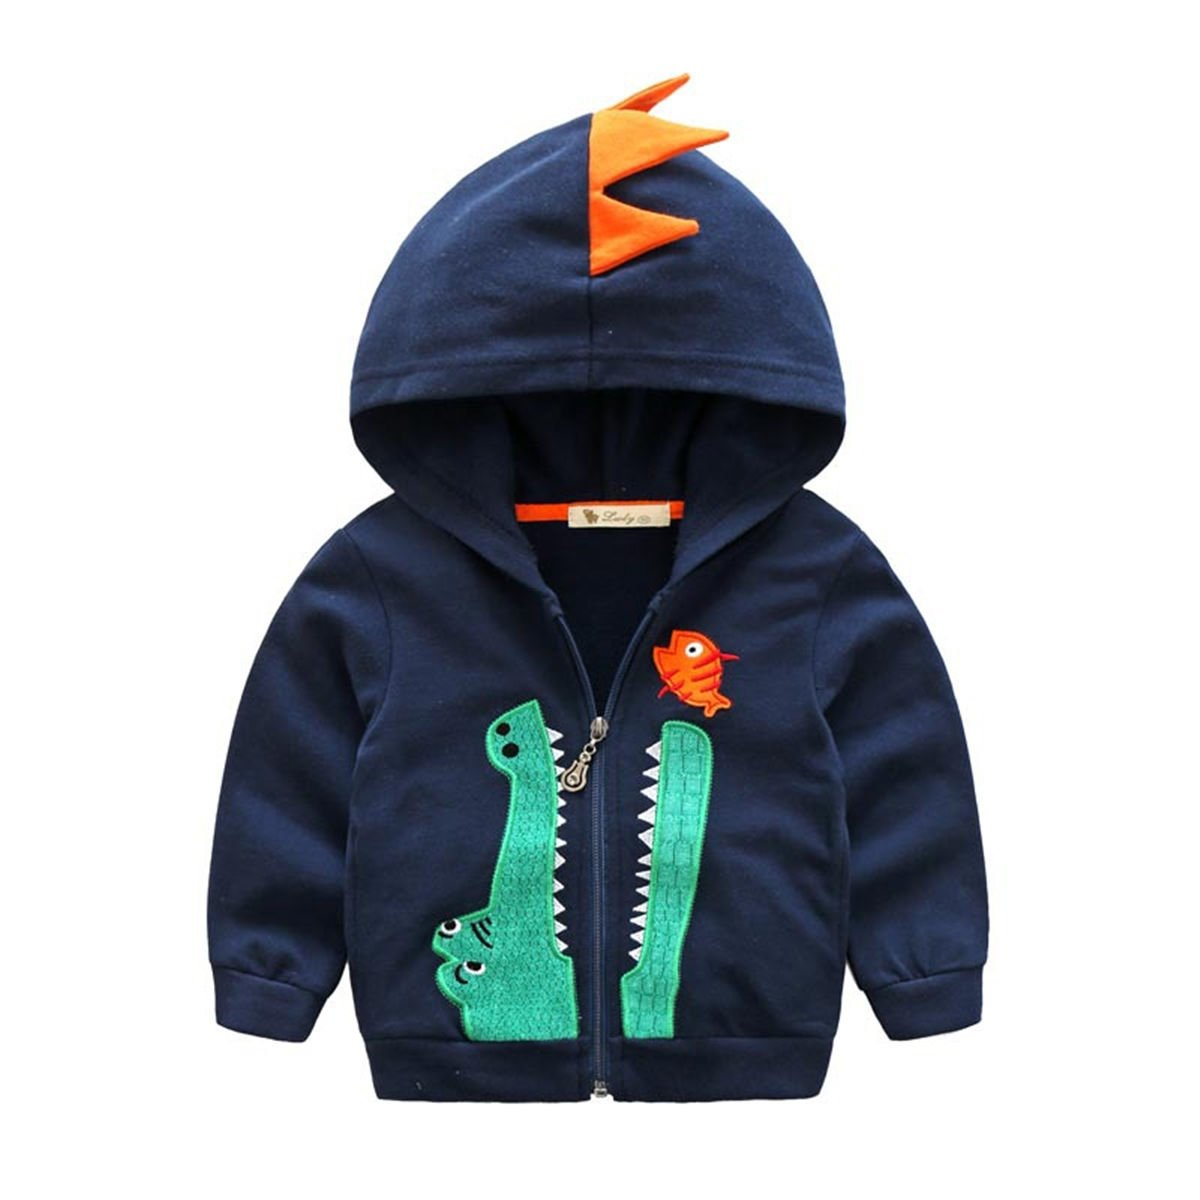 Dealone Baby Boys Long Sleeve Dinosaur Hoodies Kids Sweatshirt Toddler Zip-up Jacket